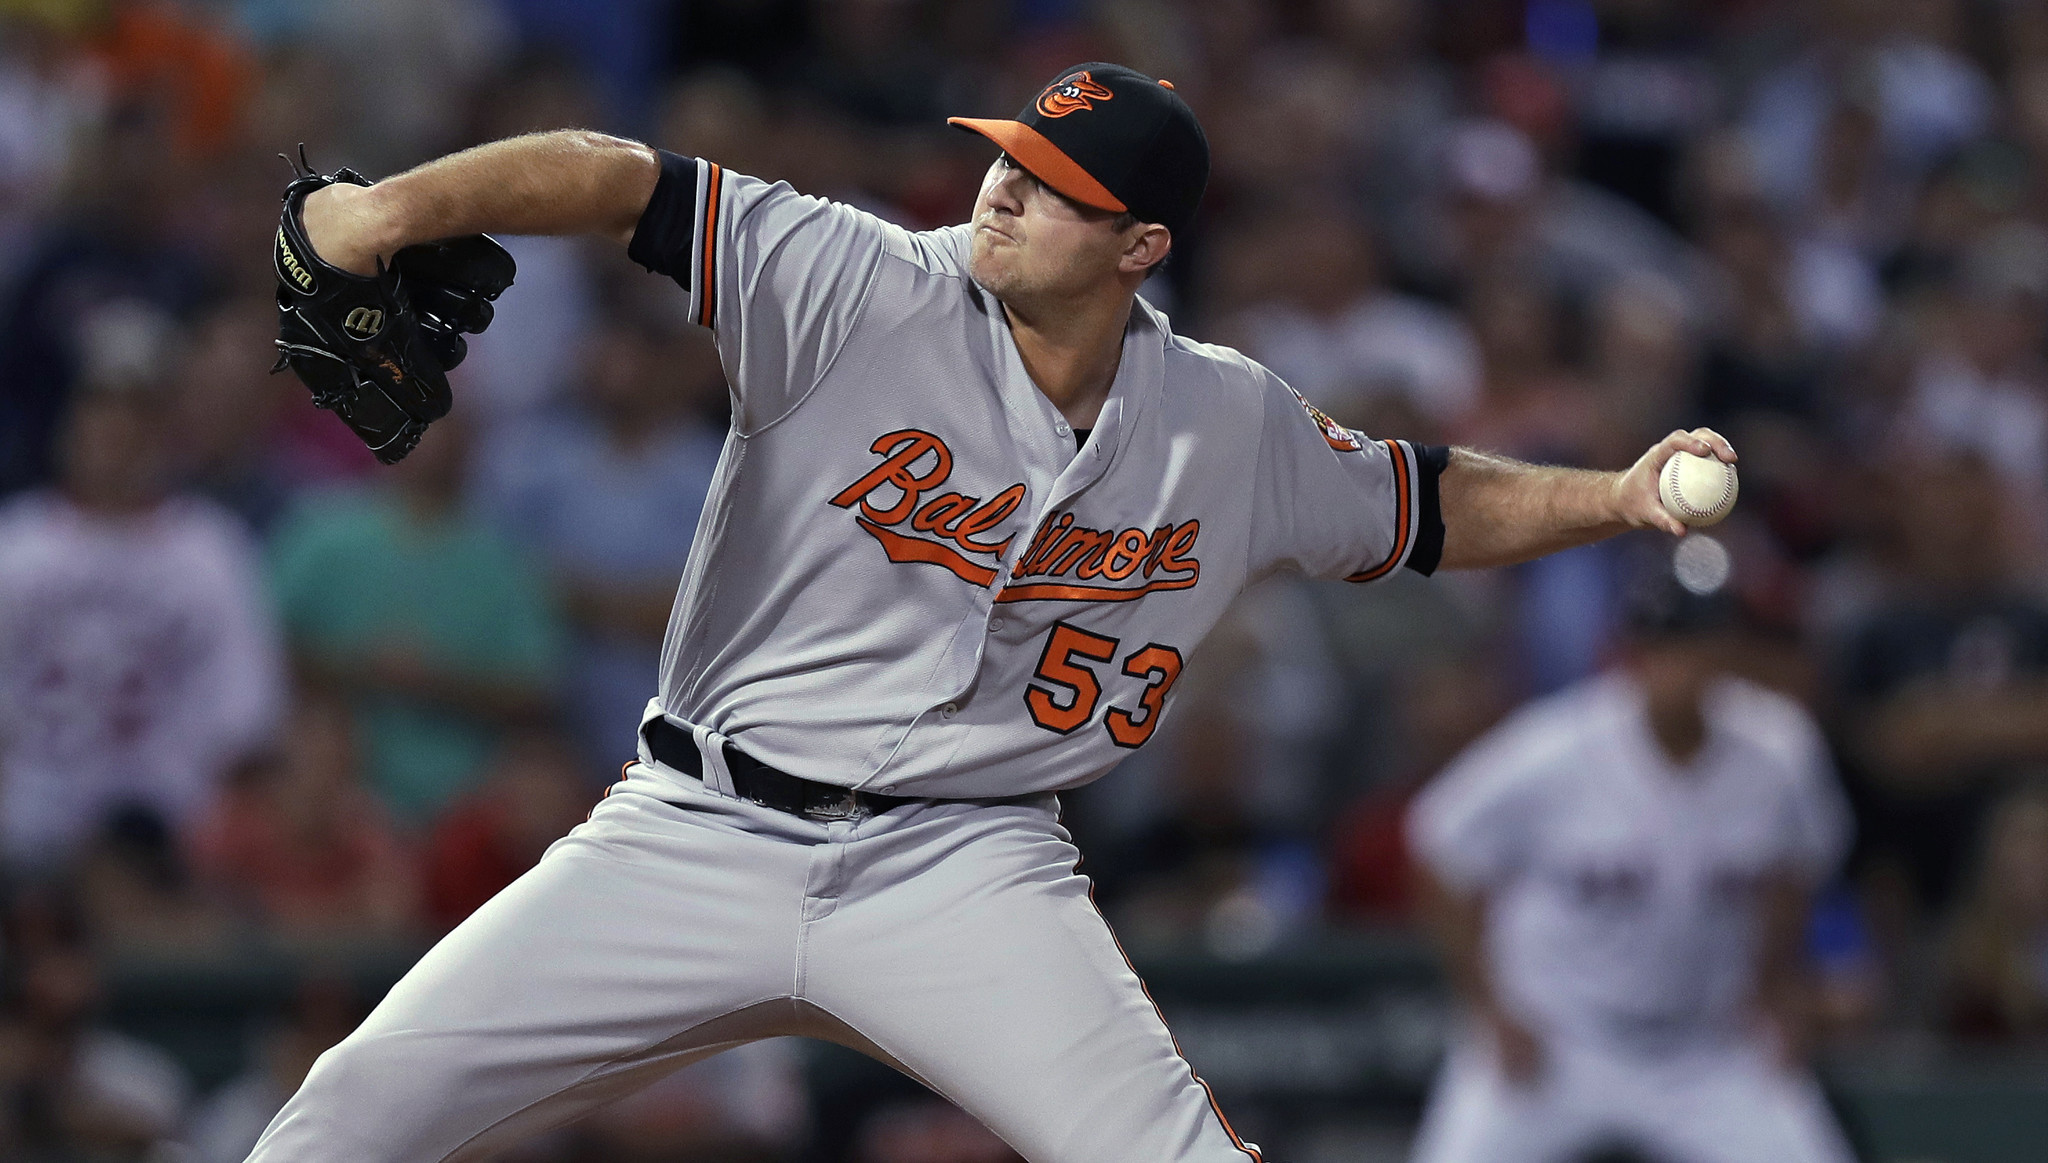 Bal-orioles-closer-zach-britton-named-to-sporting-news-al-all-star-team-machado-edged-by-donaldson-at-th-20161026